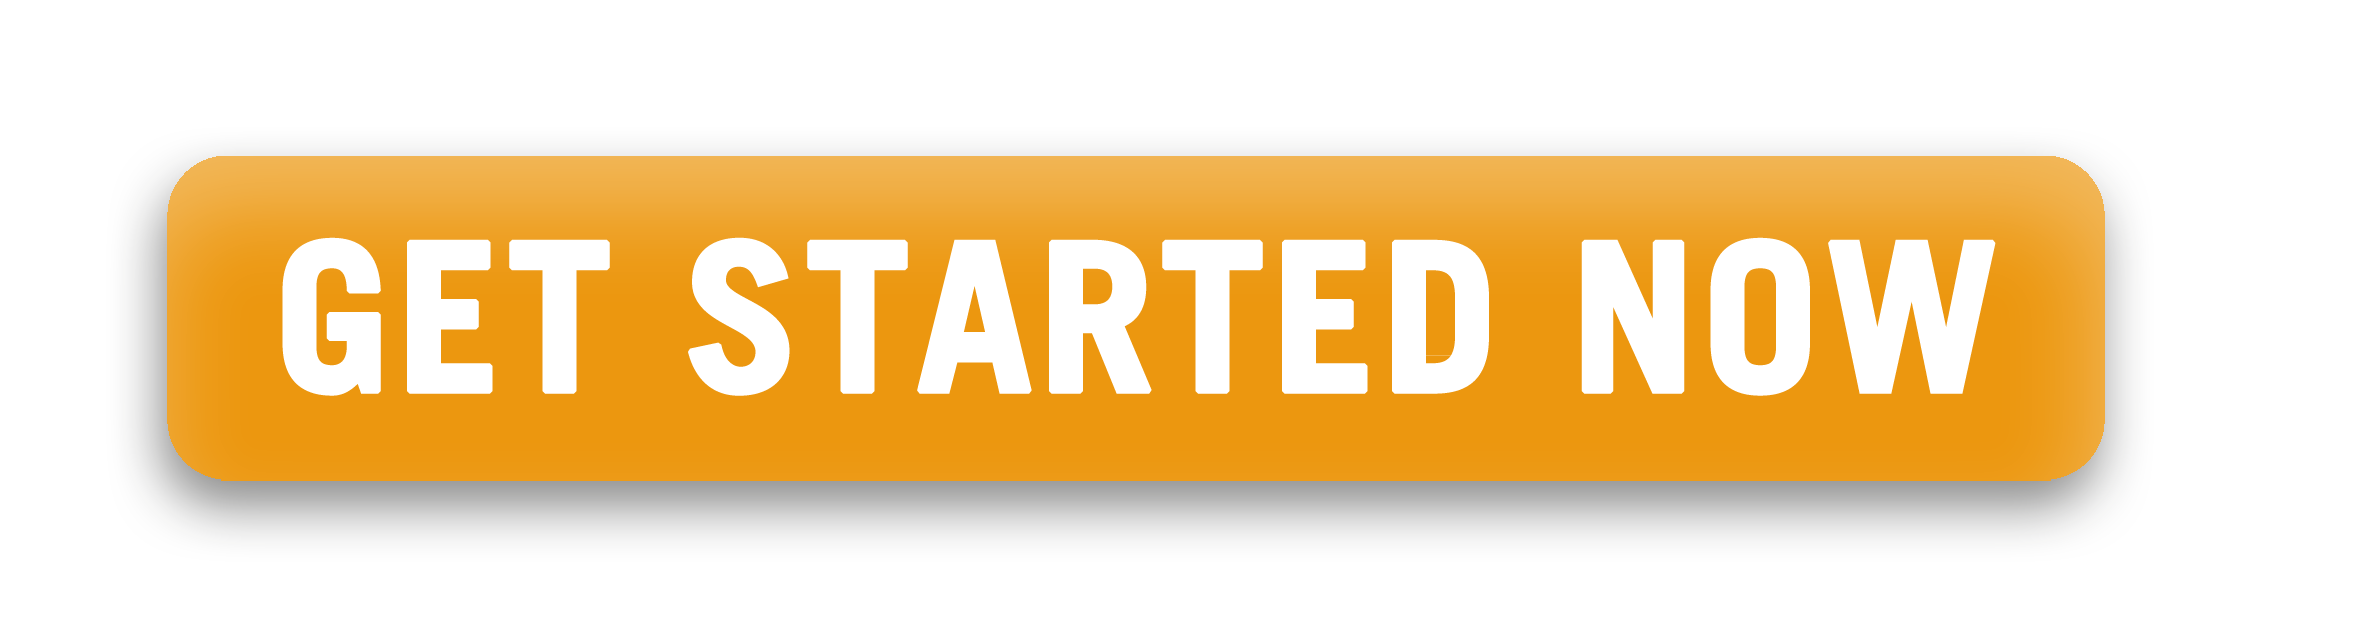 Get Started Now Button PNG - 27547